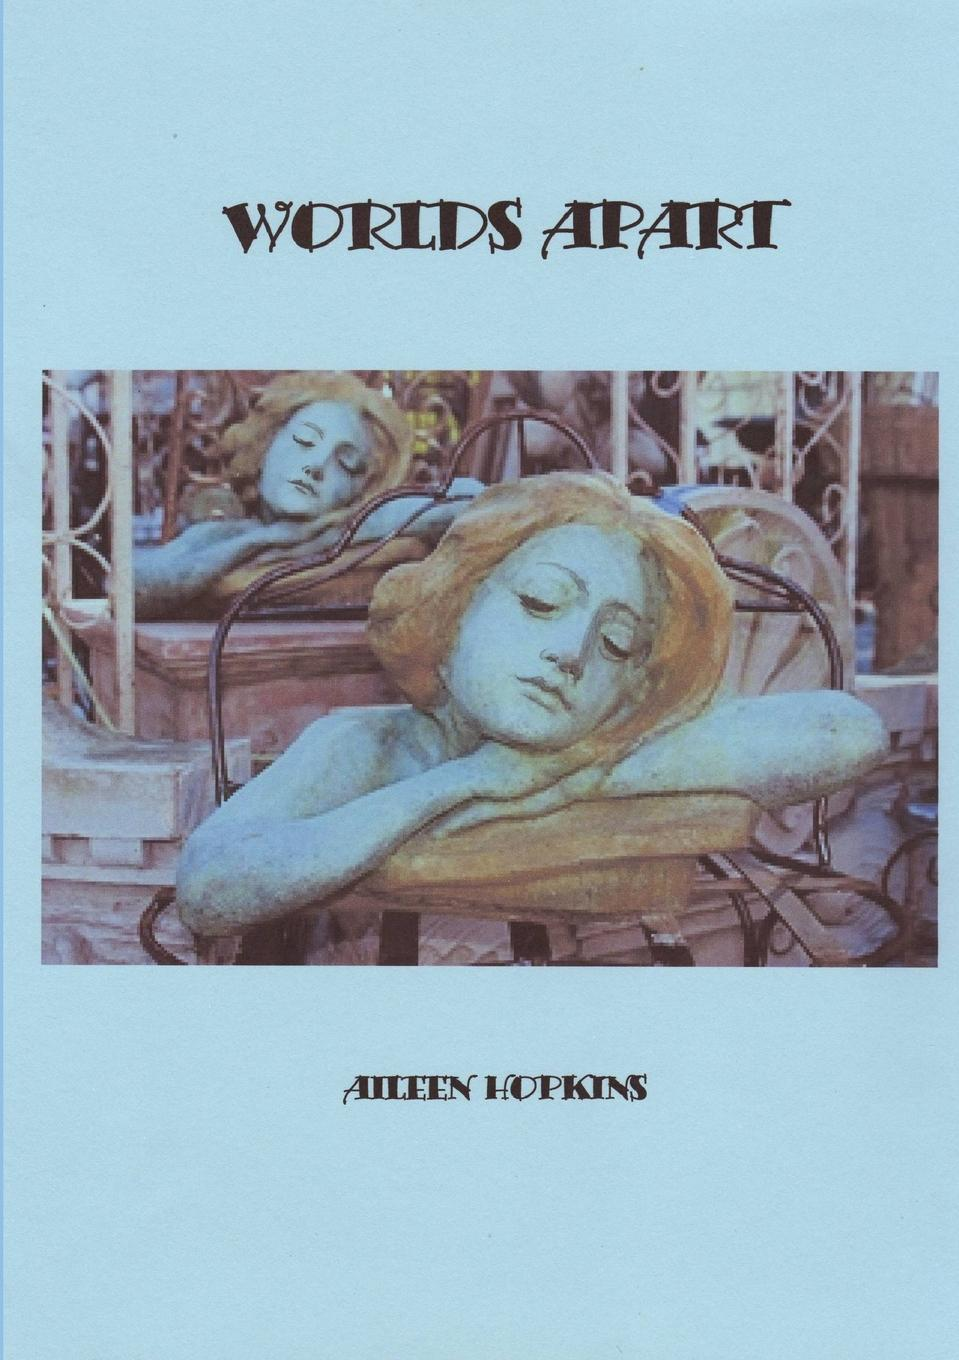 aileen hopkins WORLDS APART nap time story